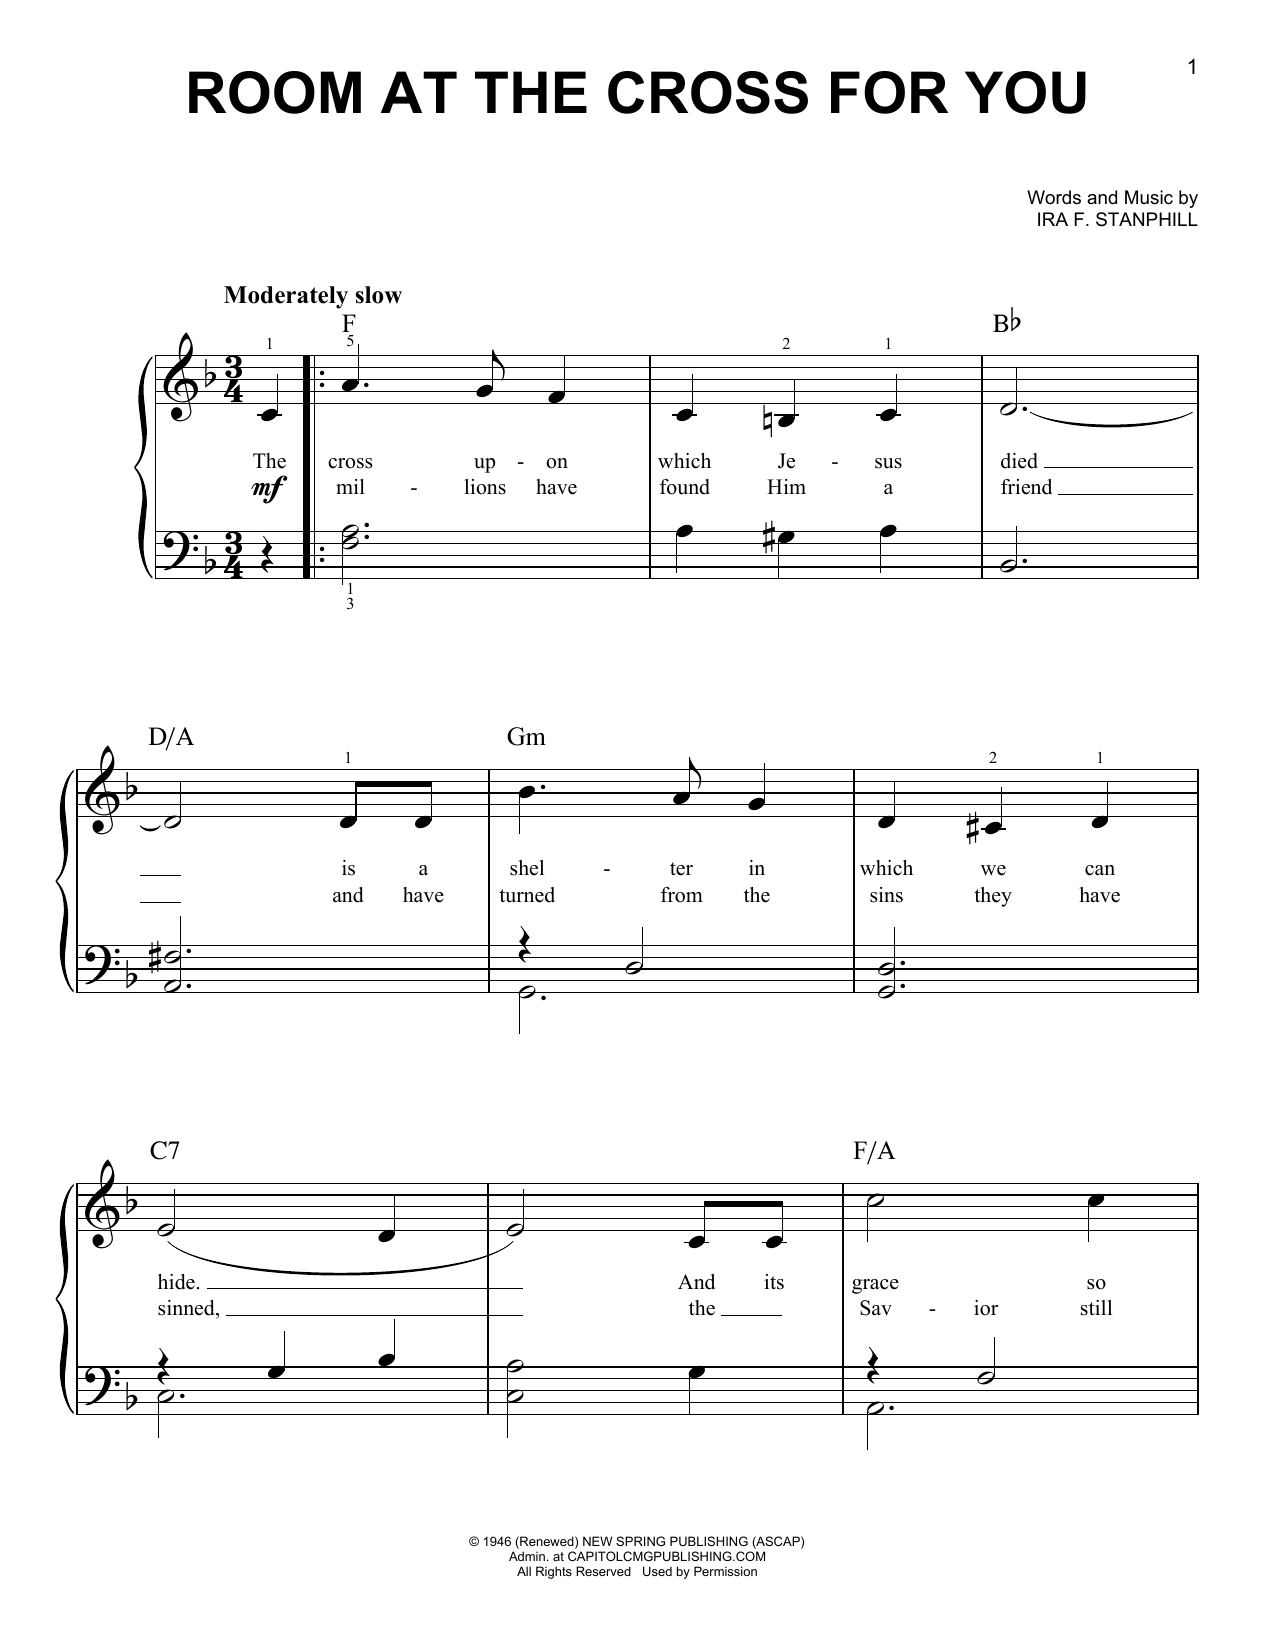 Ira F. Stanphill Room At The Cross For You sheet music notes and chords. Download Printable PDF.